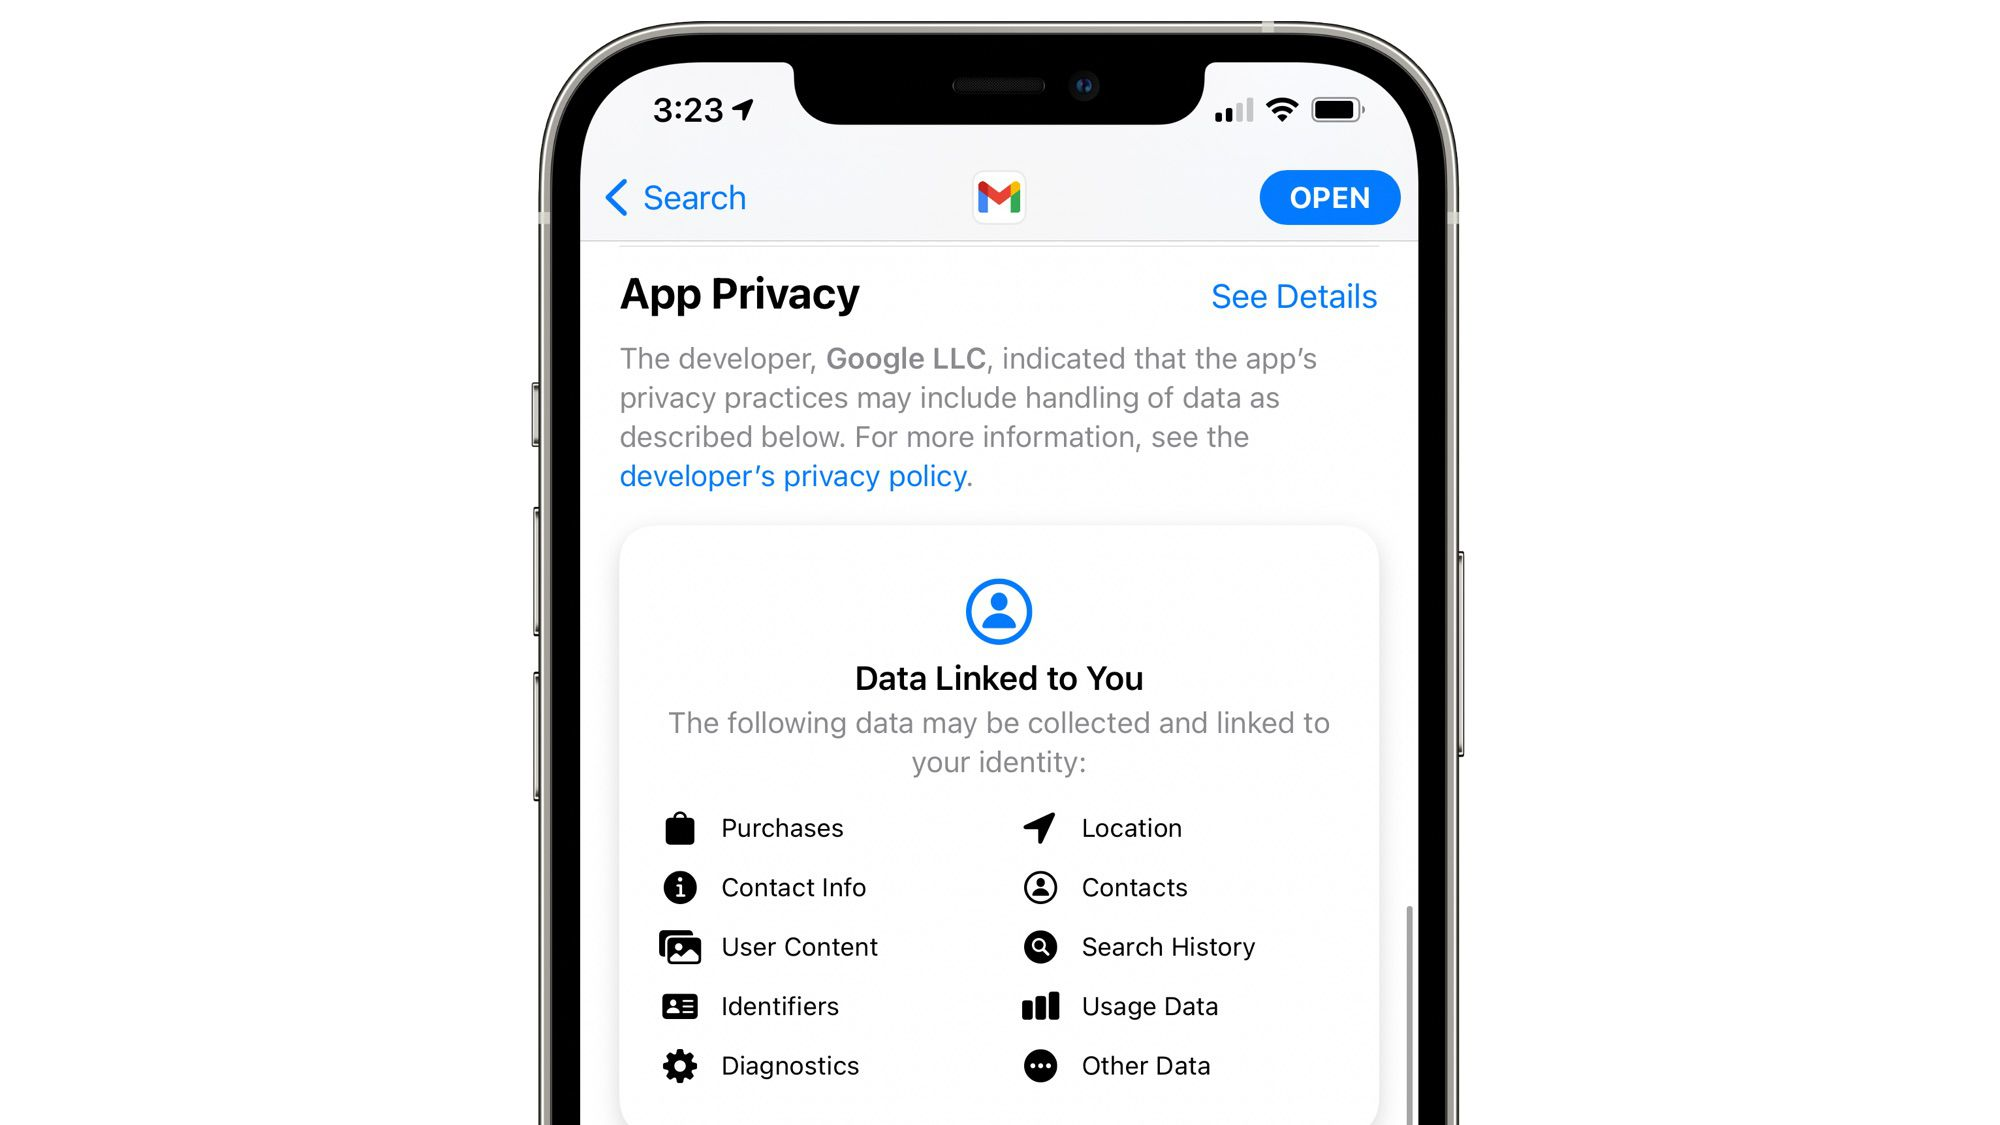 Google Finally Adds App Privacy Labels to Gmail App